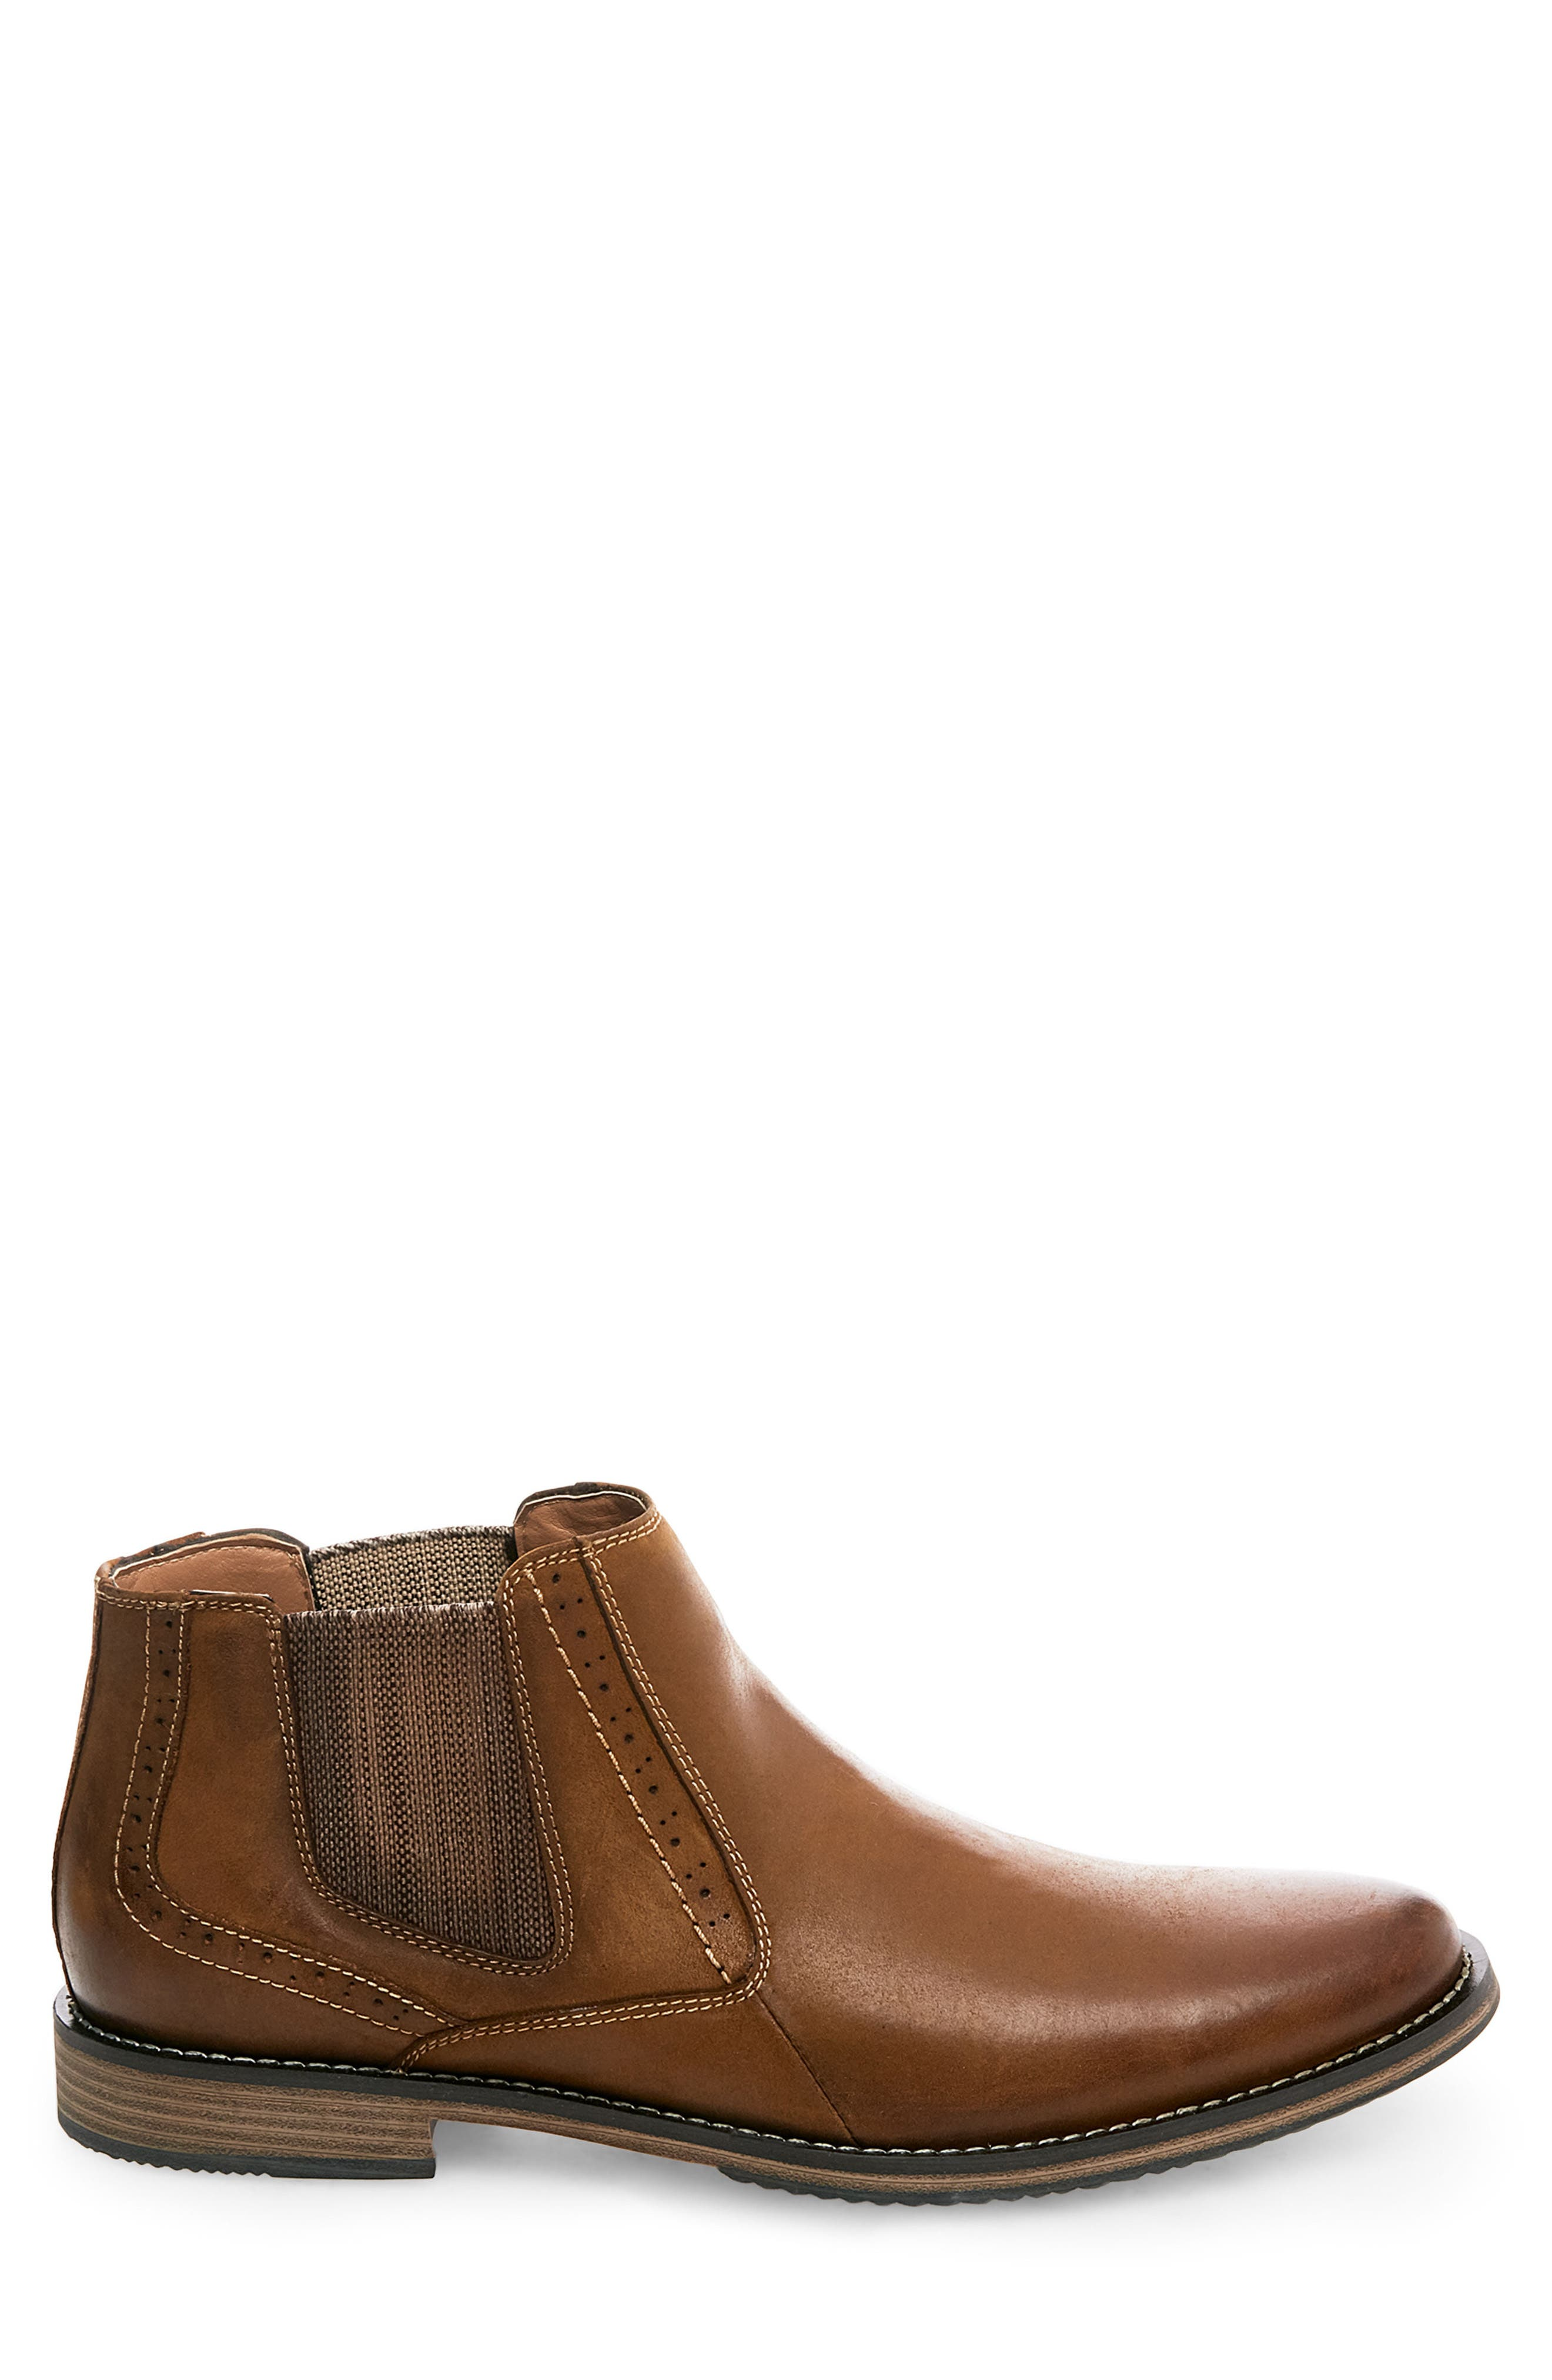 Paxton Chelsea Boot,                             Alternate thumbnail 3, color,                             Camel Leather